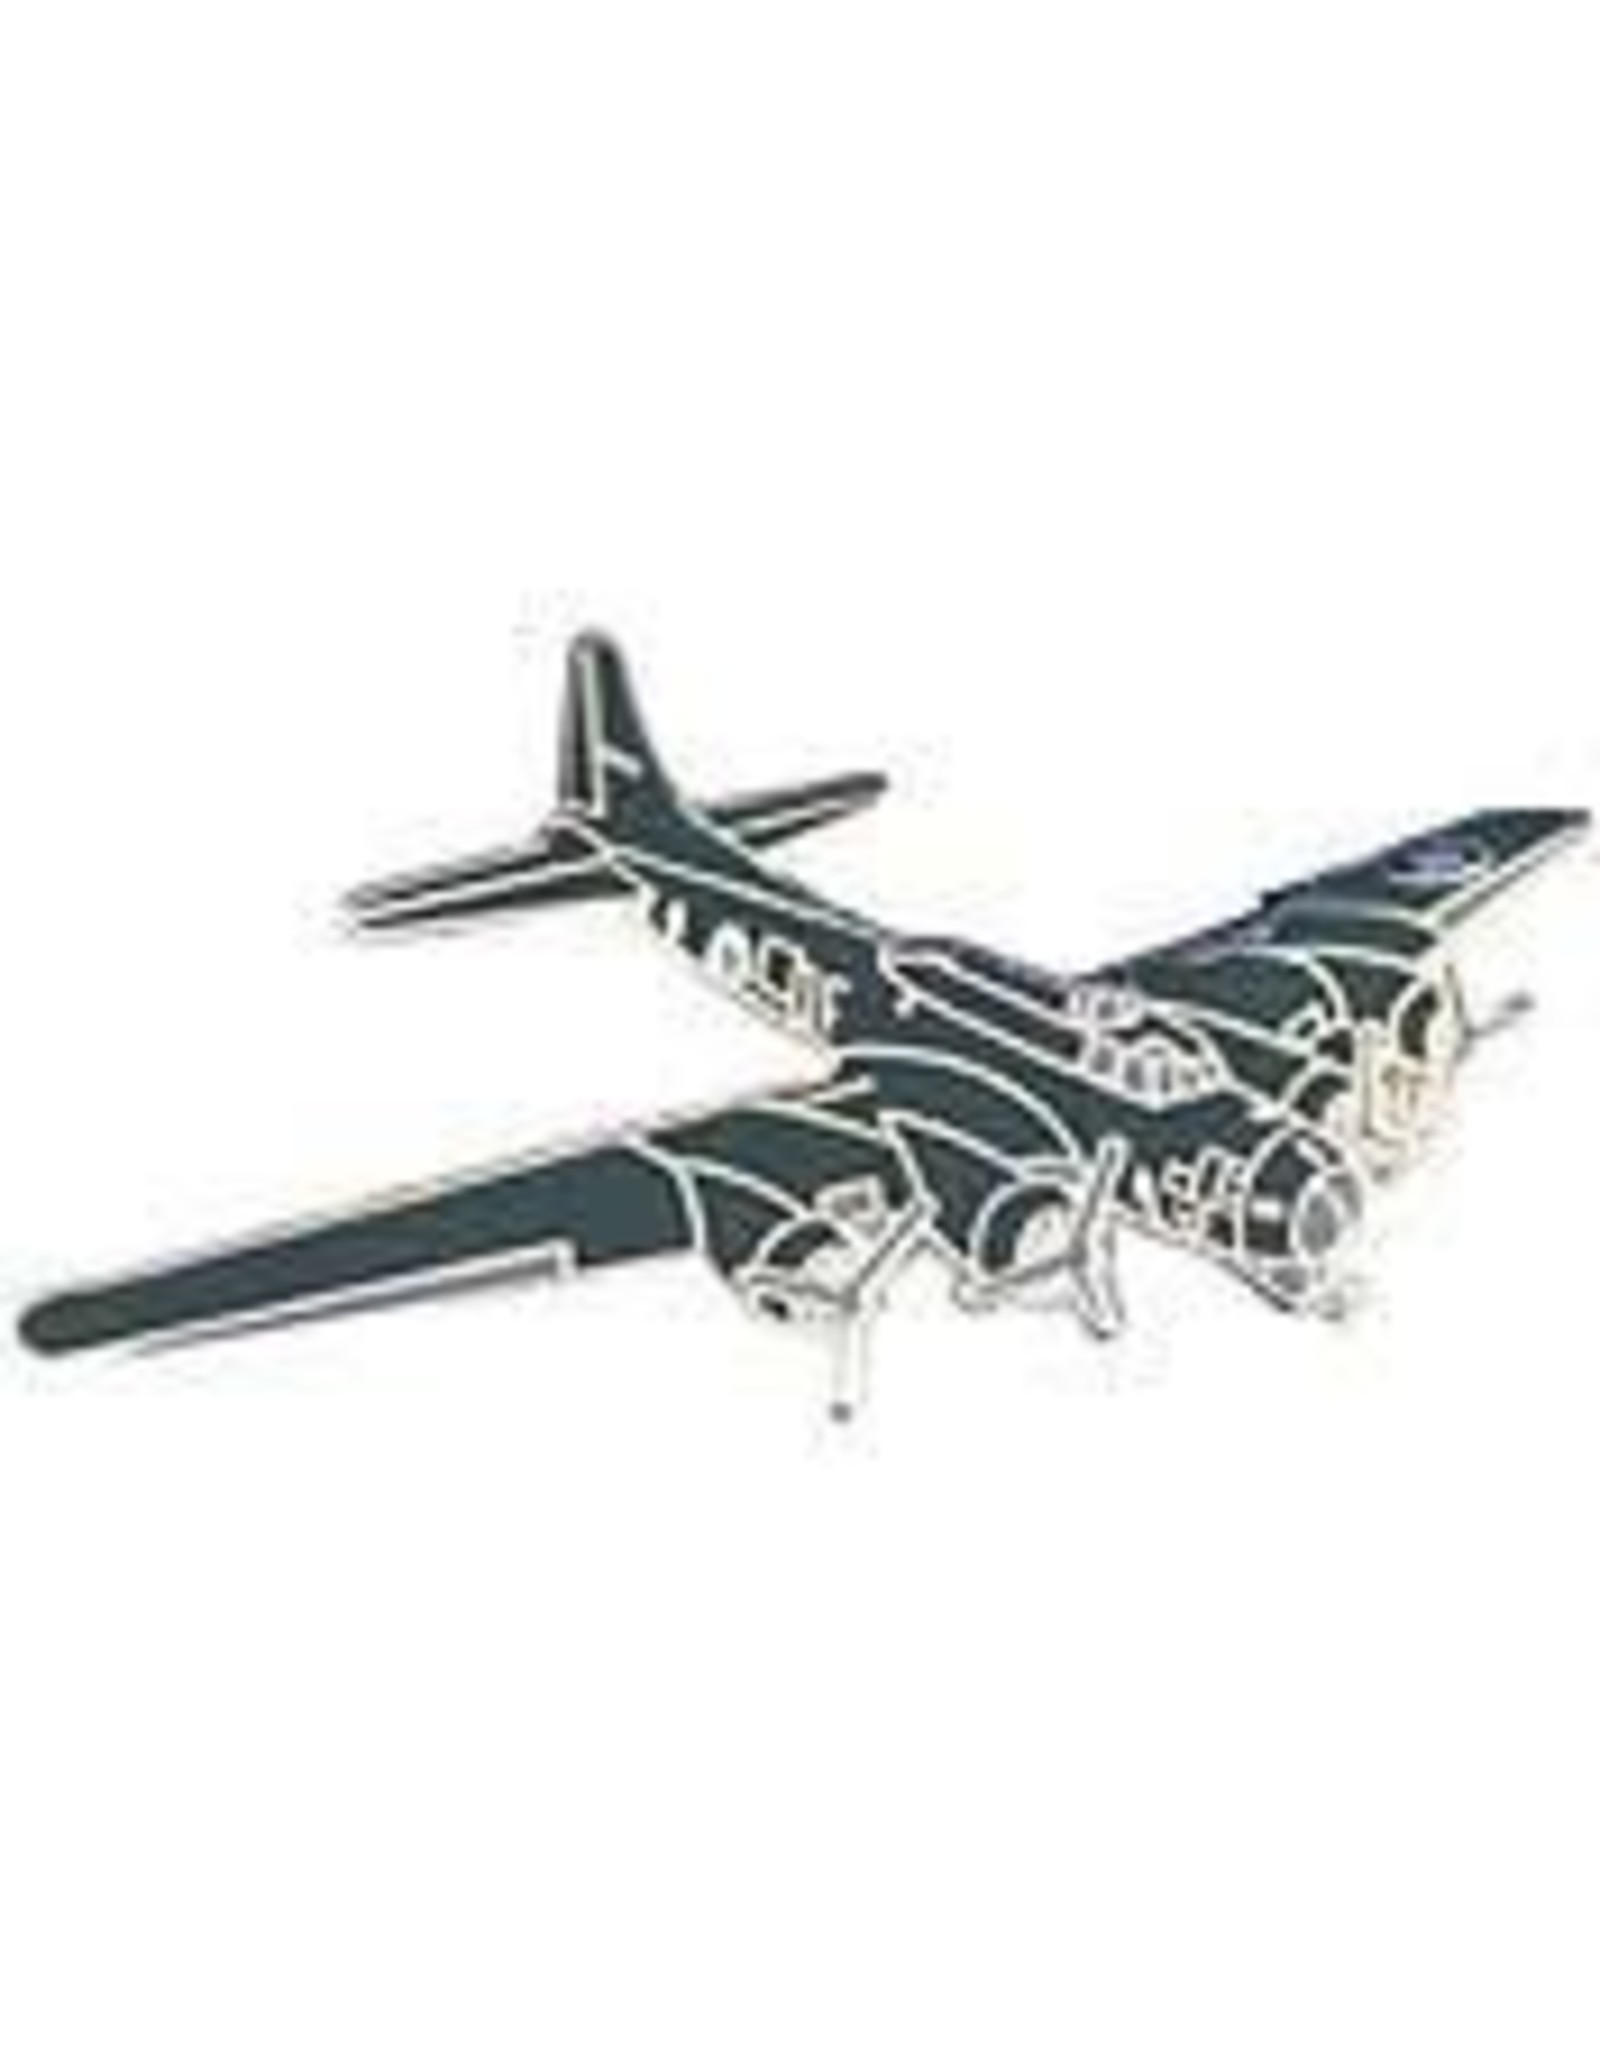 Pin - Airplane B-17 Flying Fortress